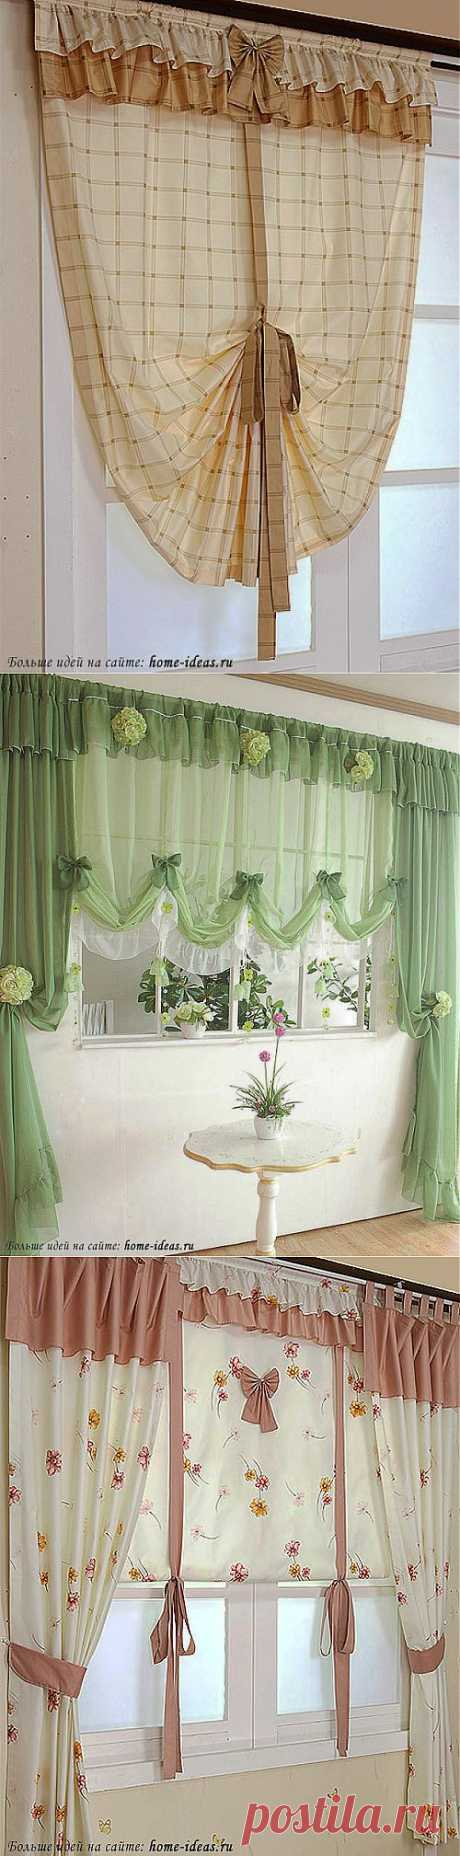 Beautiful curtains for kitchen (photo)